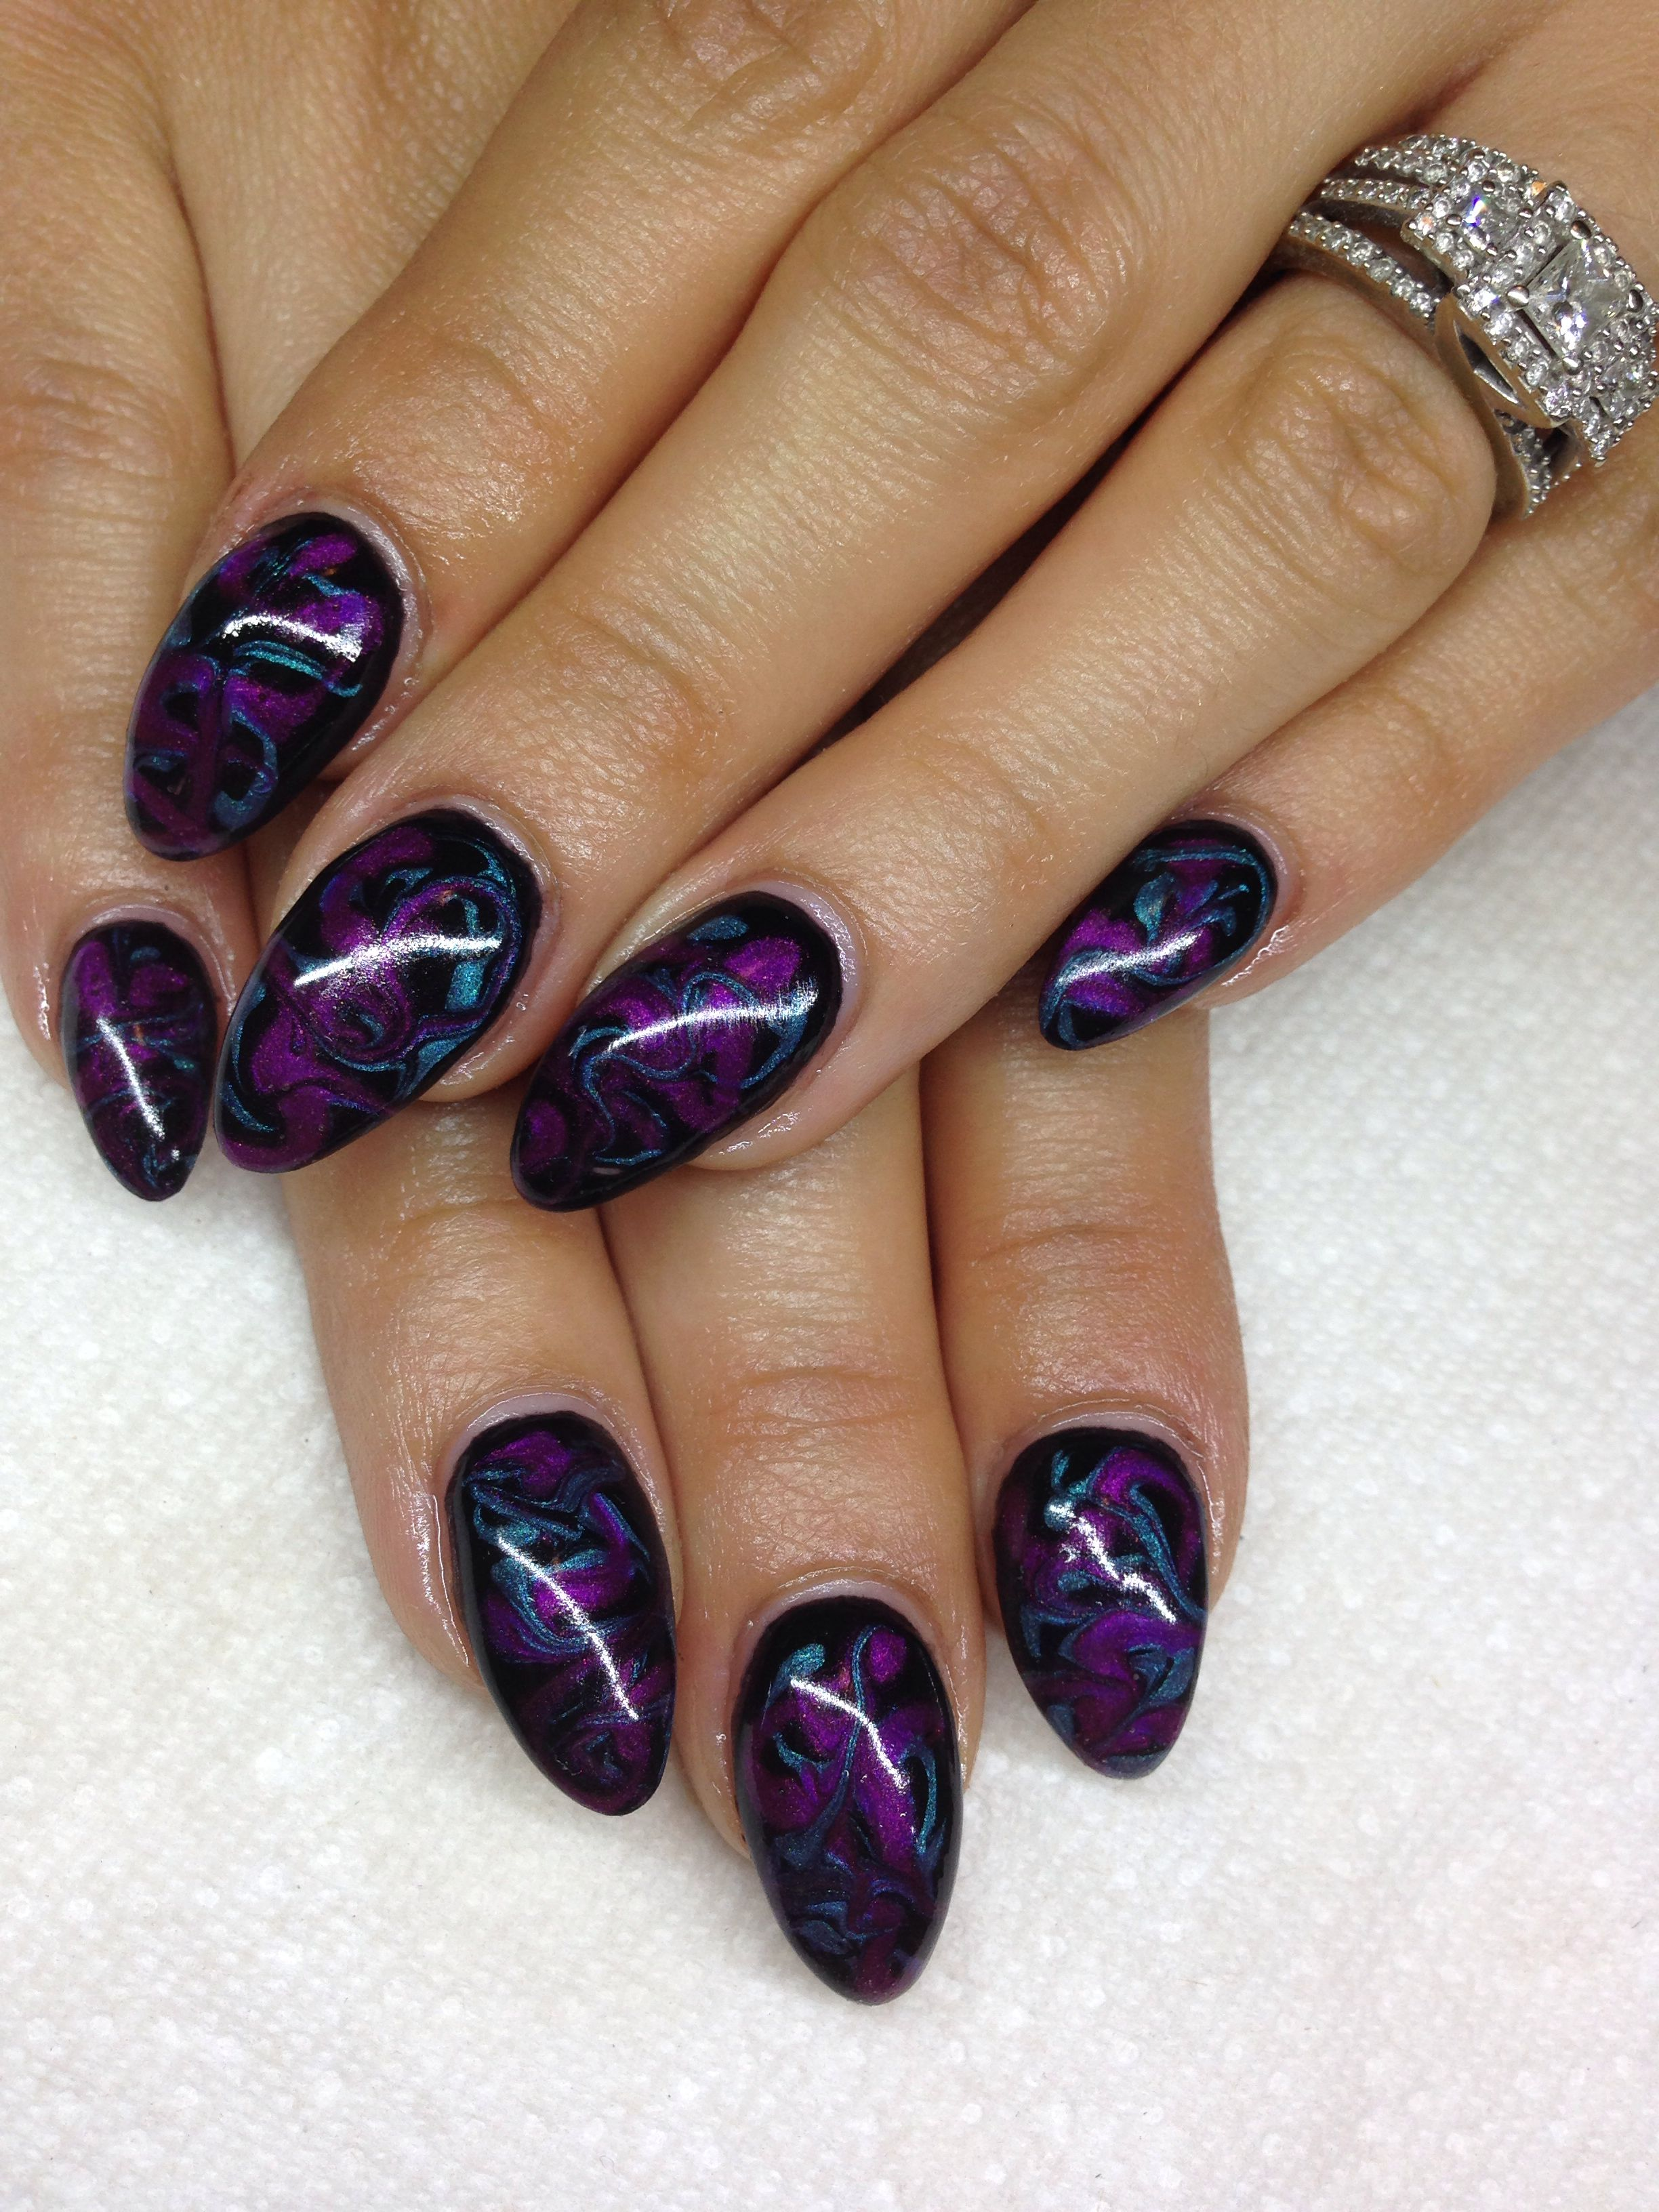 Gel nails with hand drawn design using gel by melissa fox makeup gel nails with hand drawn design using gel by melissa fox publicscrutiny Gallery